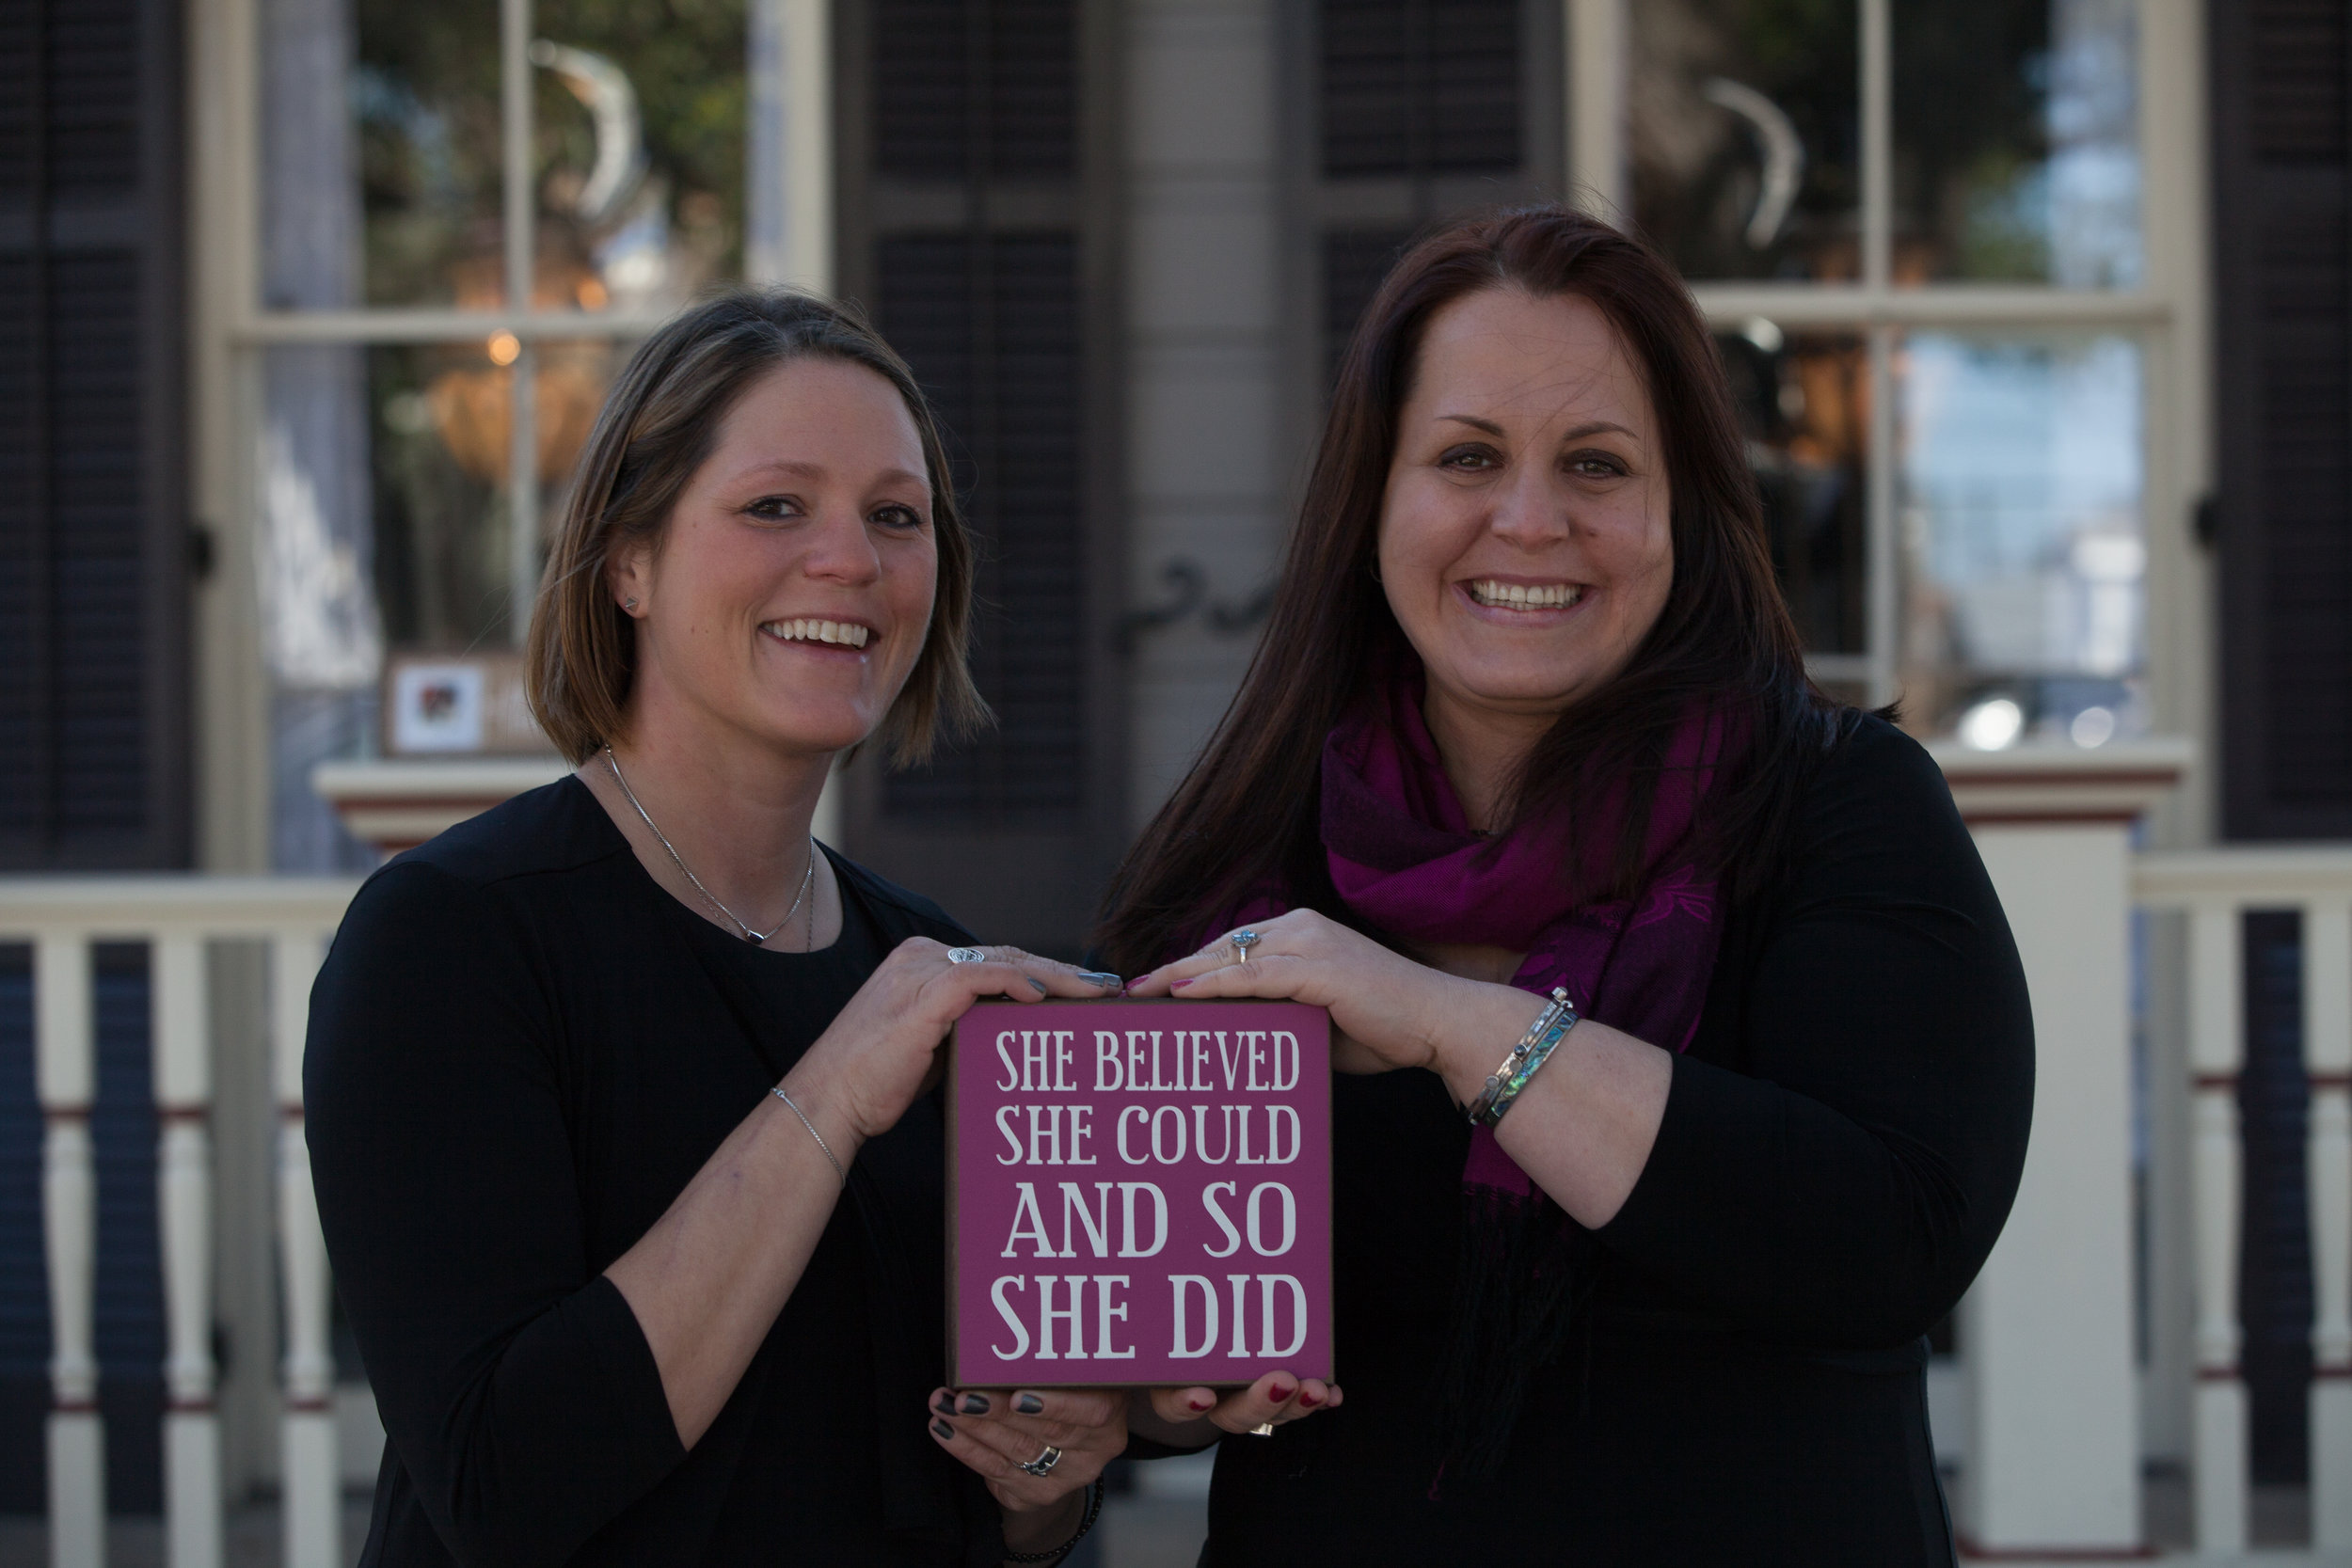 Theratique's Founders, Hope and Jessica